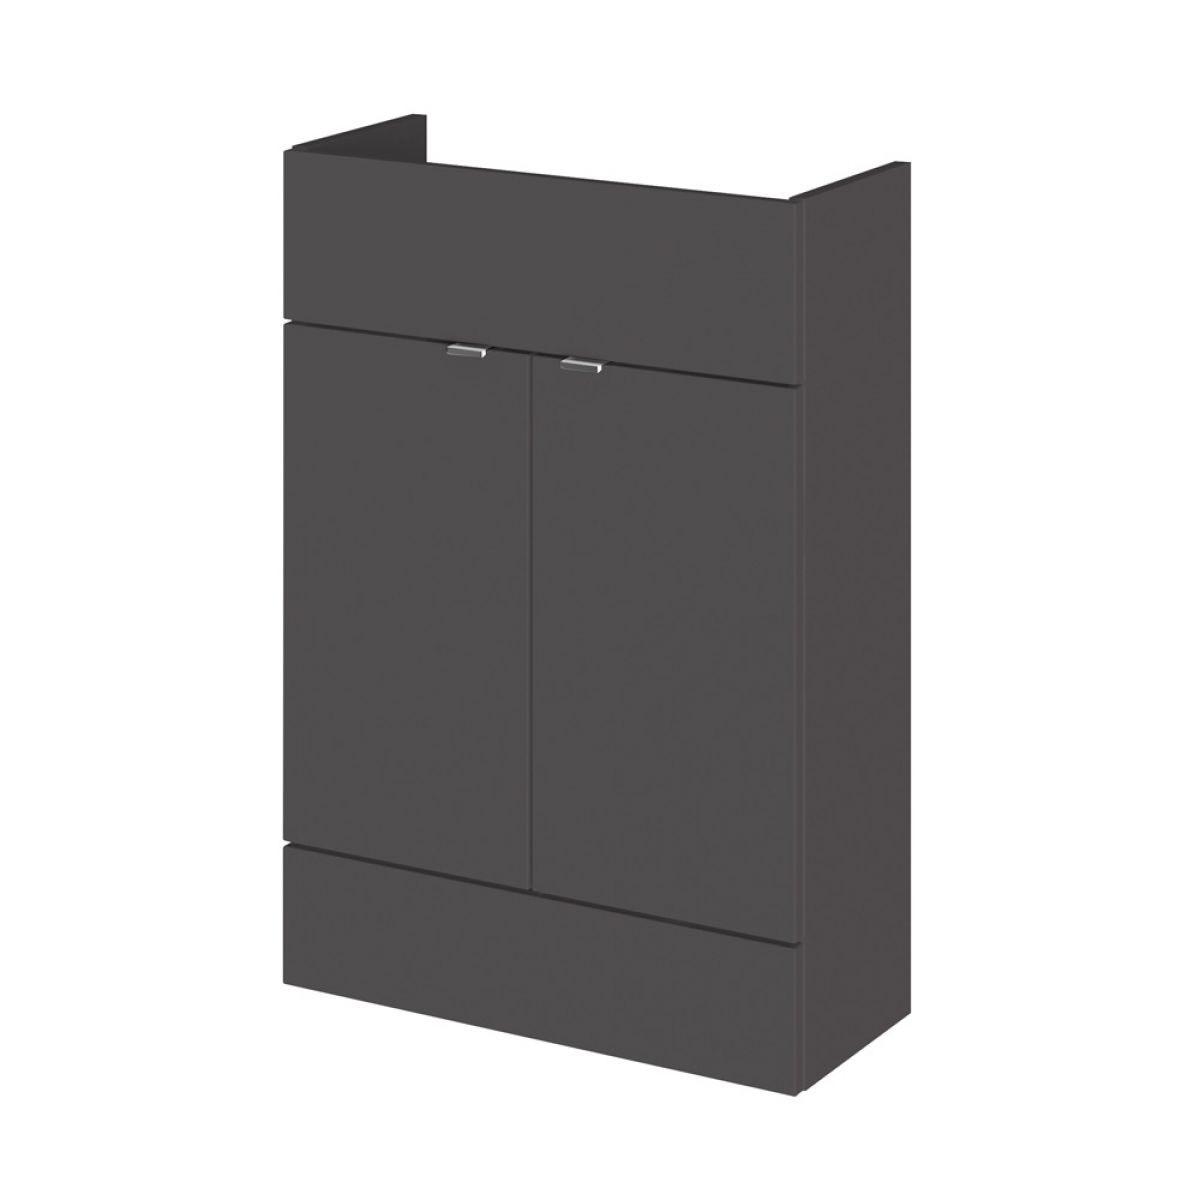 Hudson Reed Fusion Gloss Grey Slimline Combination Furniture Pack 1200mm